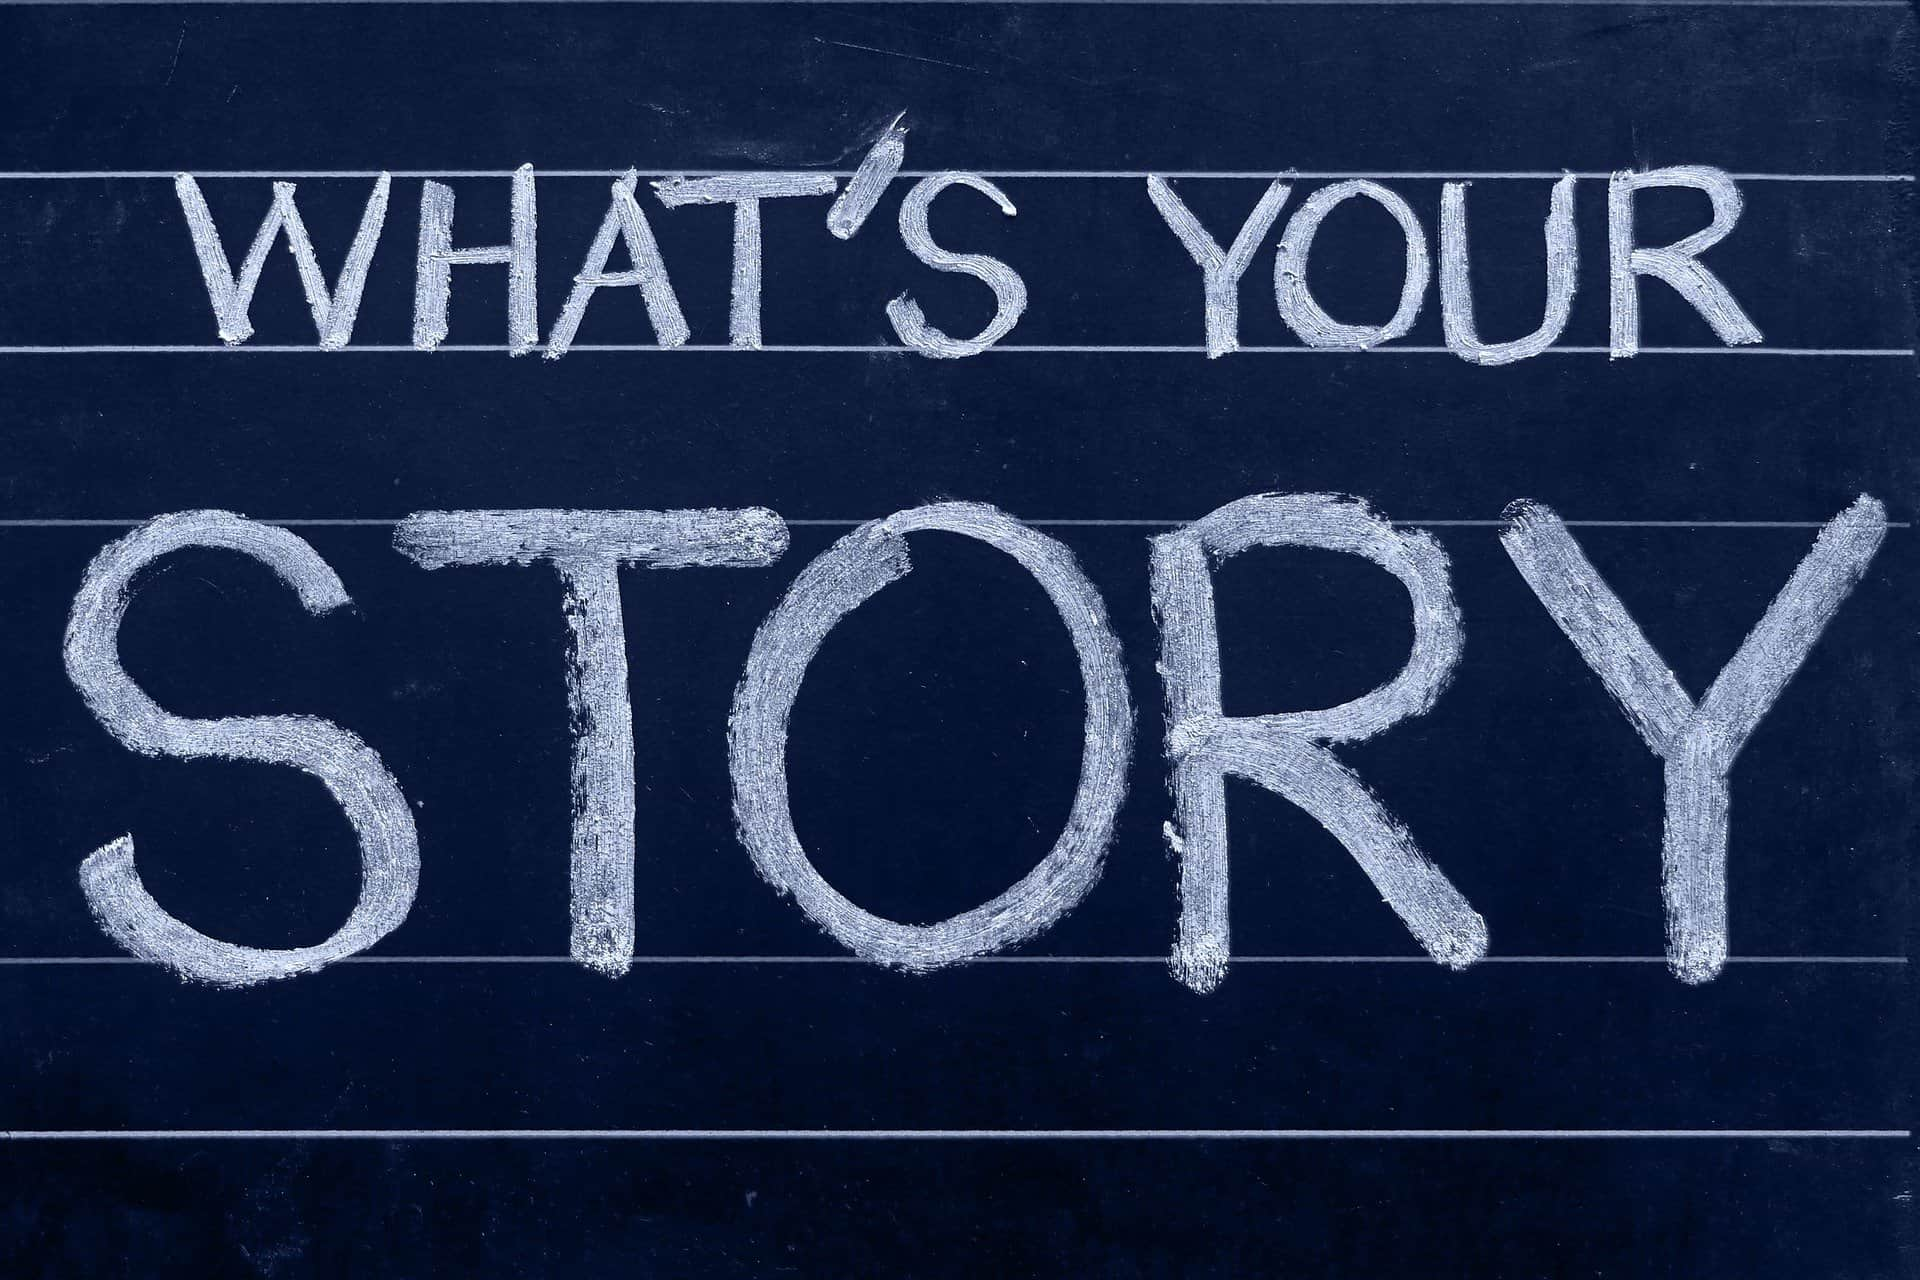 Image to remind readers that the interviewer wants to hear their story